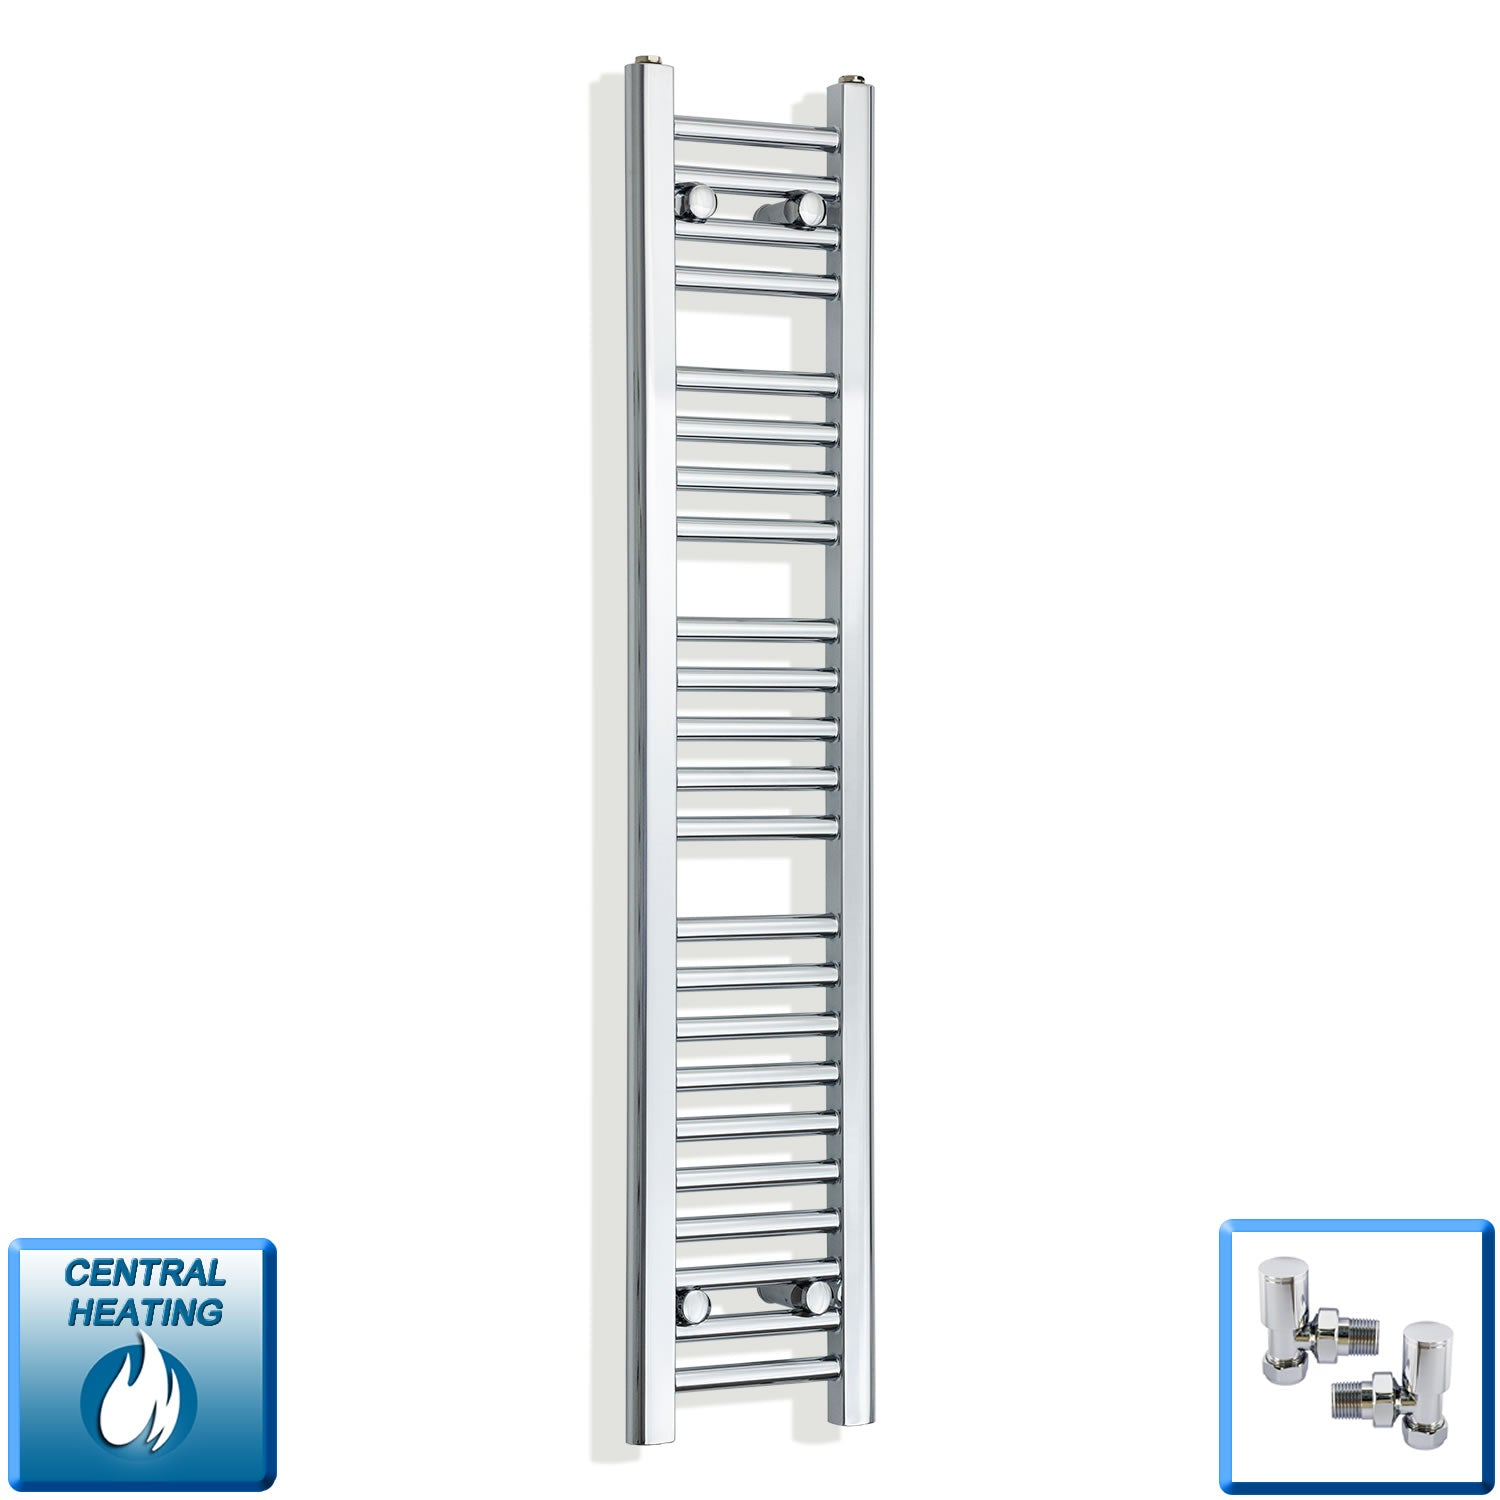 200mm Wide 1200mm High Flat Chrome Heated Towel Rail Radiator